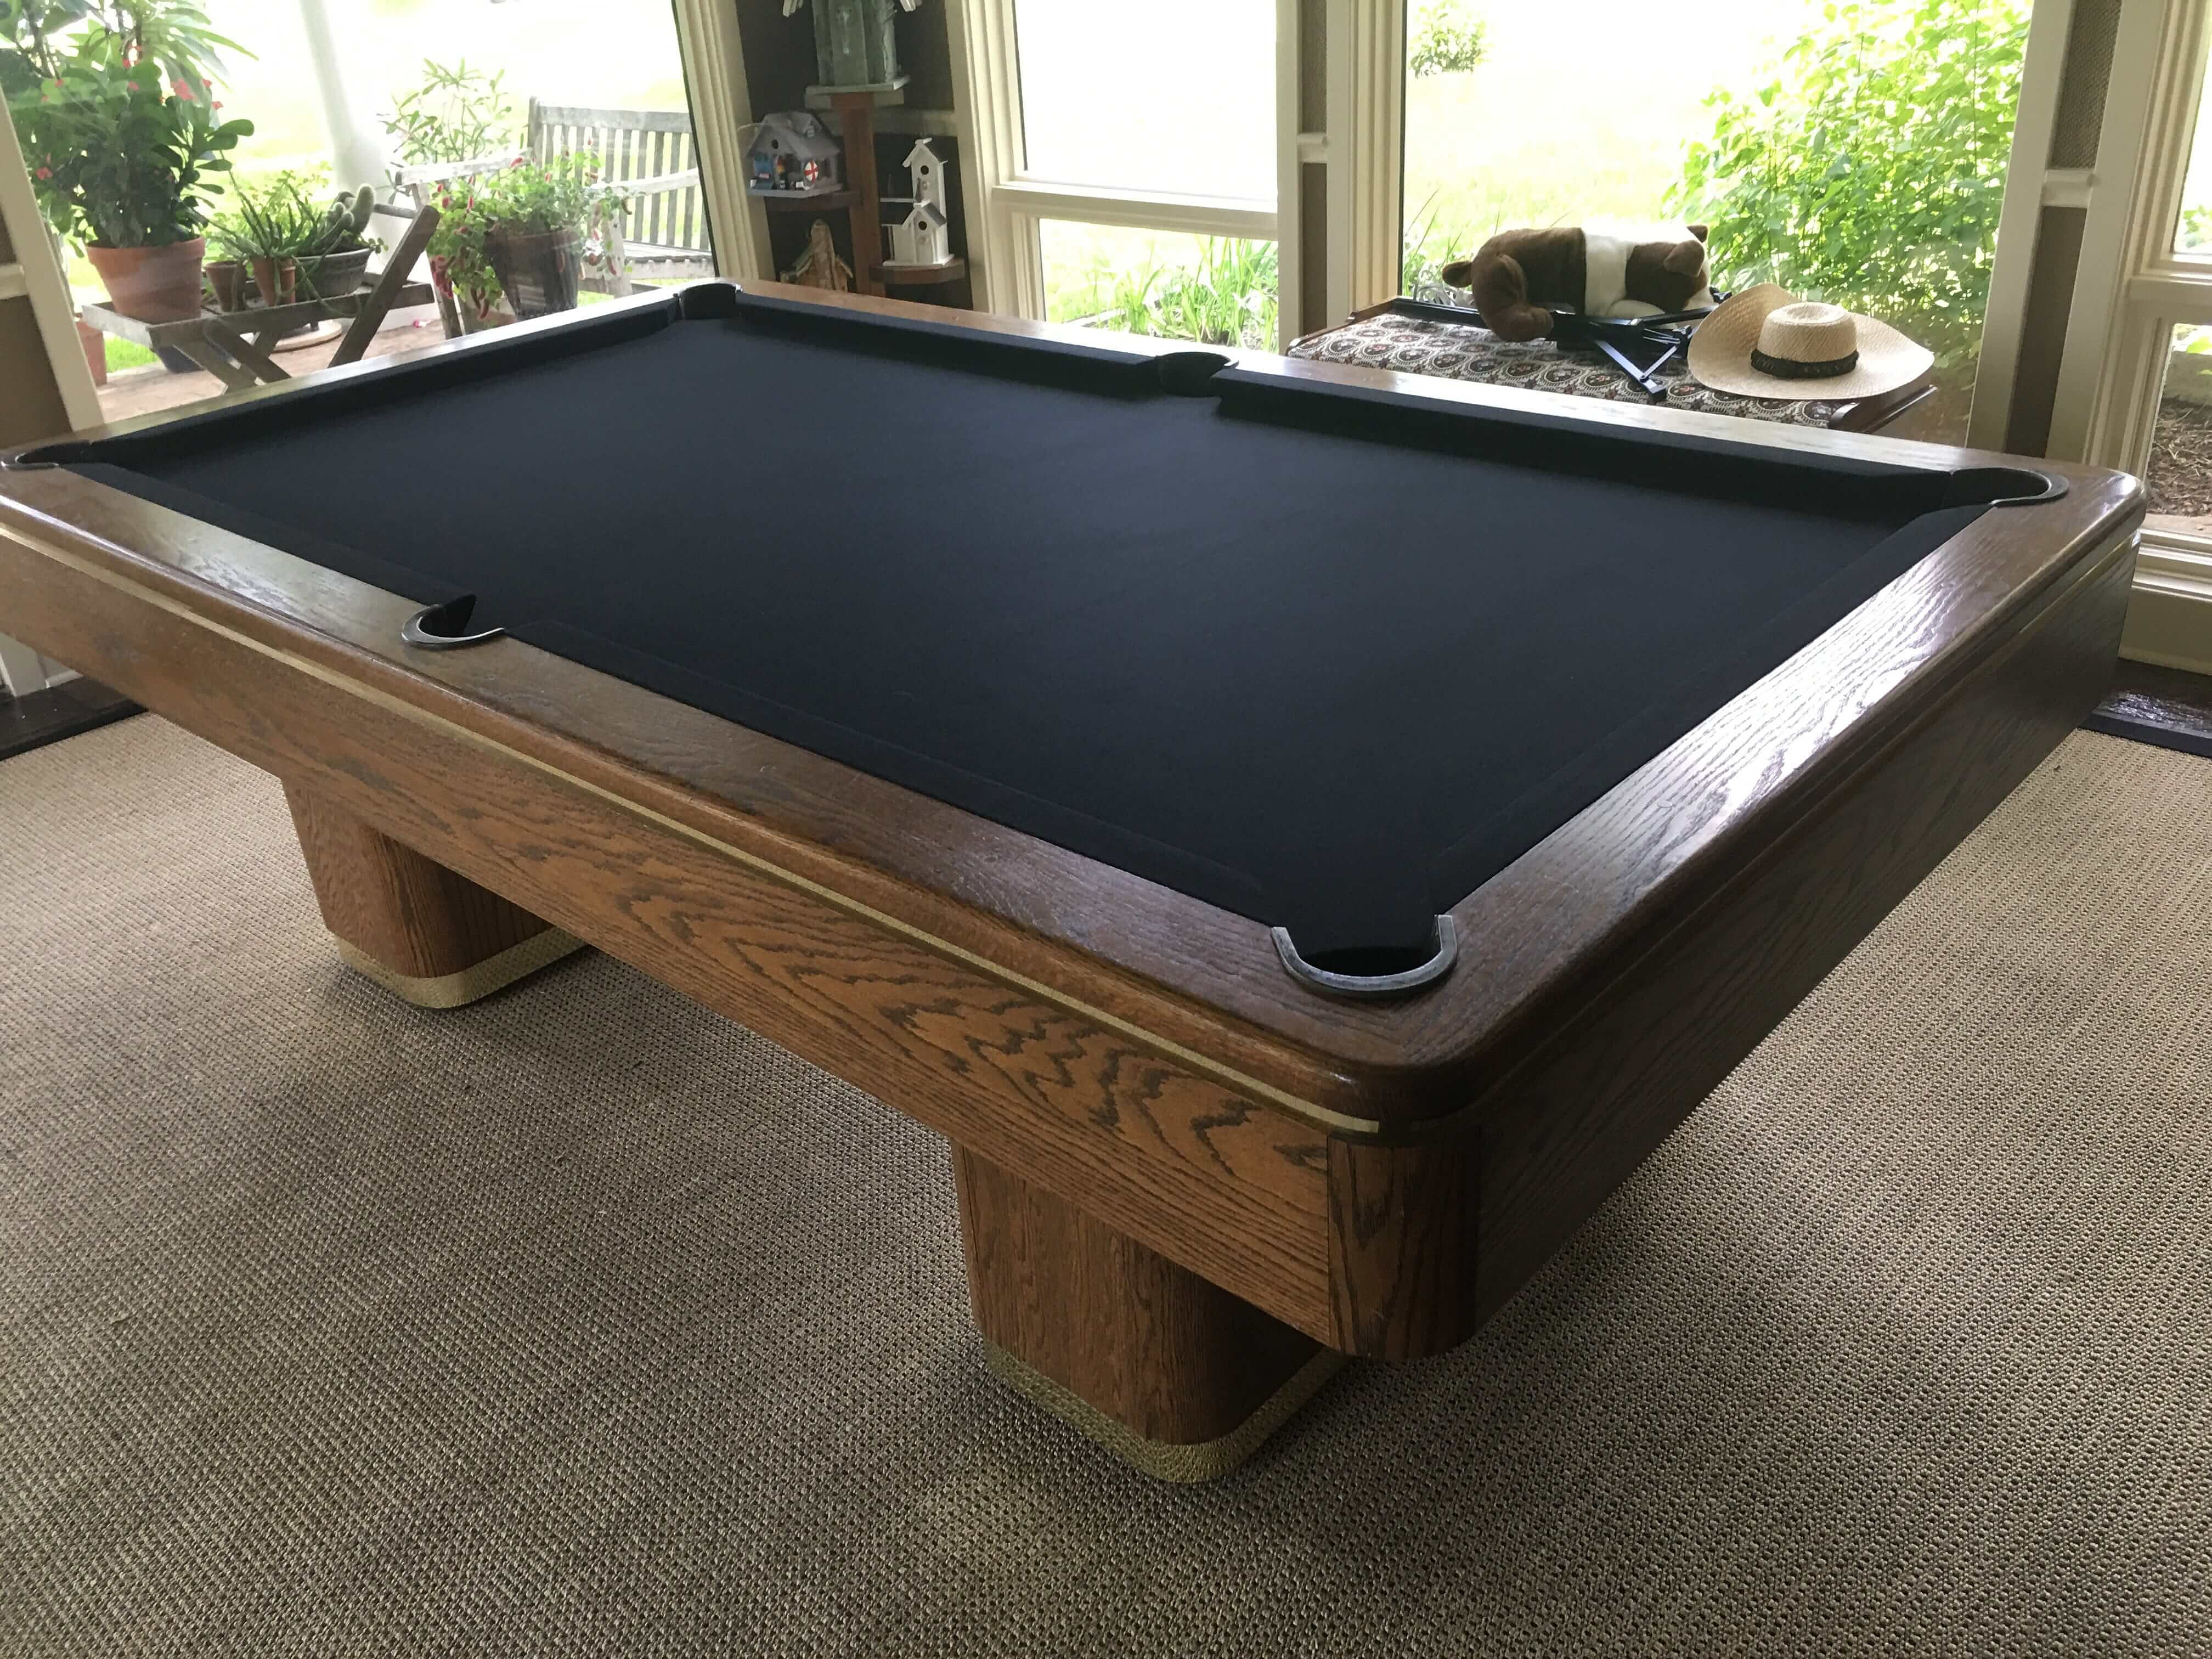 Merveilleux Pool Table Crew The No1 Pool Table Service U0026 Pool Table Movers Houston | Pool  Table Movers.